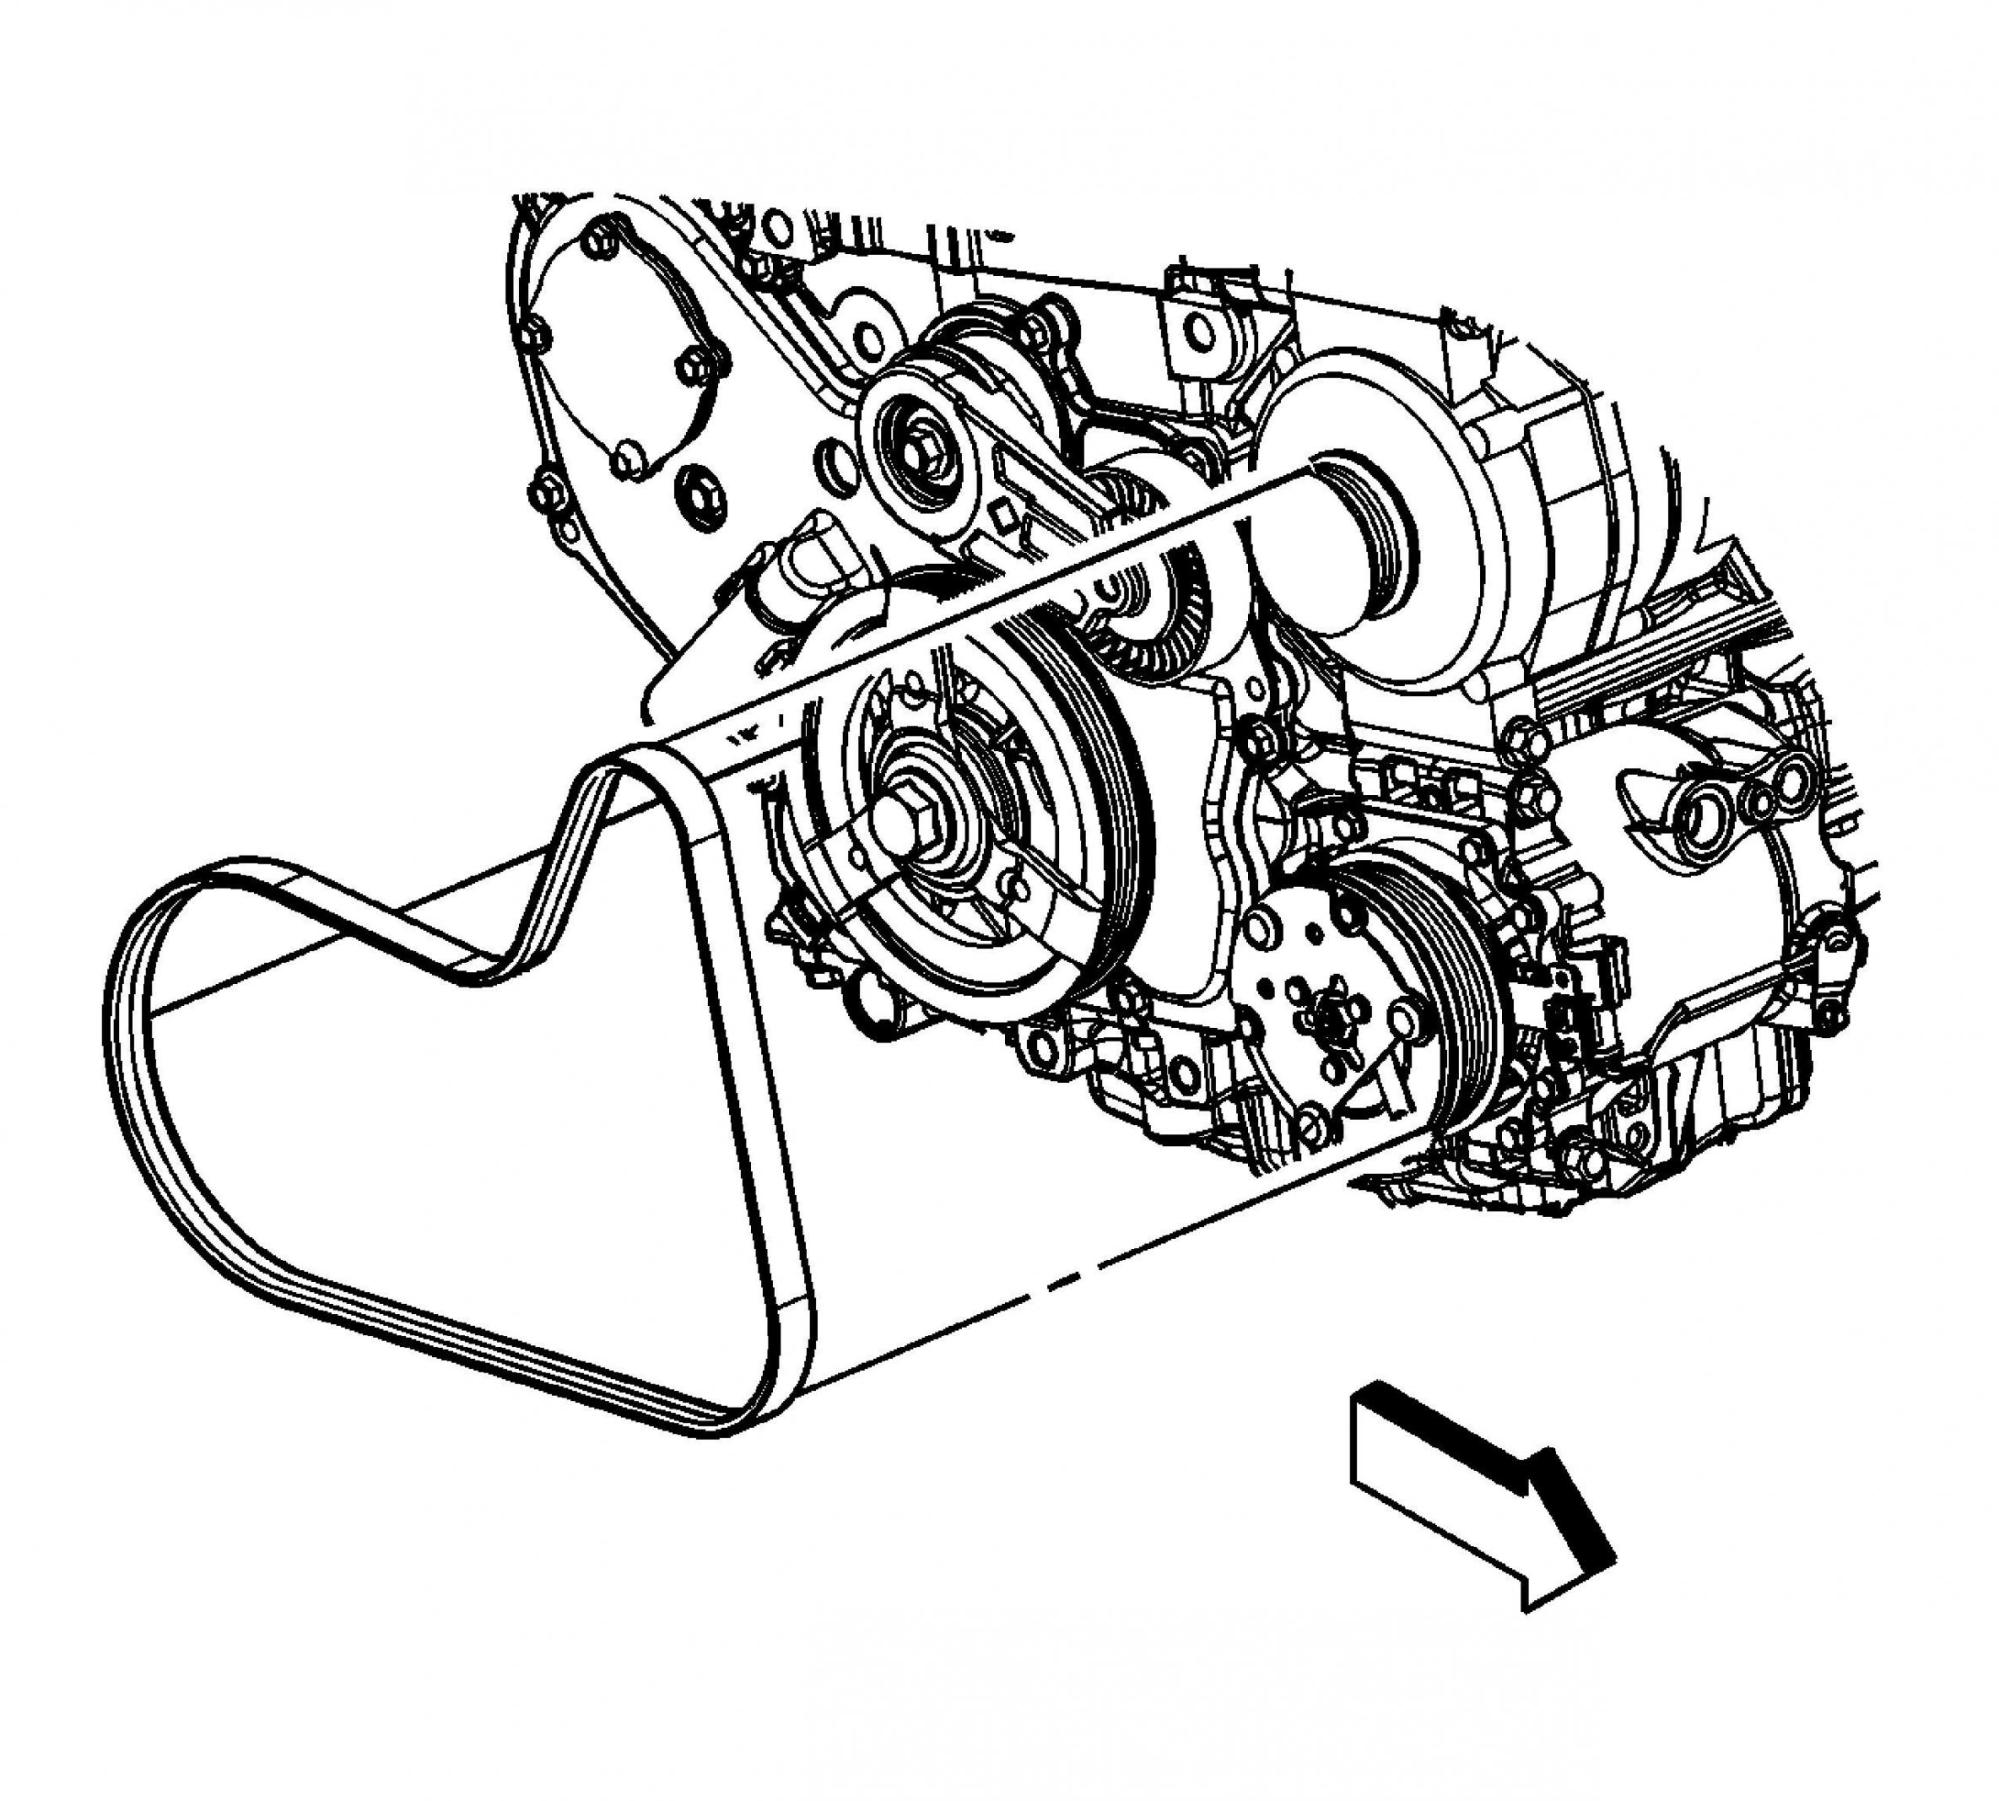 hight resolution of chevy 2 4 engine serpentine belt diagram wiring diagrams bib chevrolet 3 4 engine serpentine belt